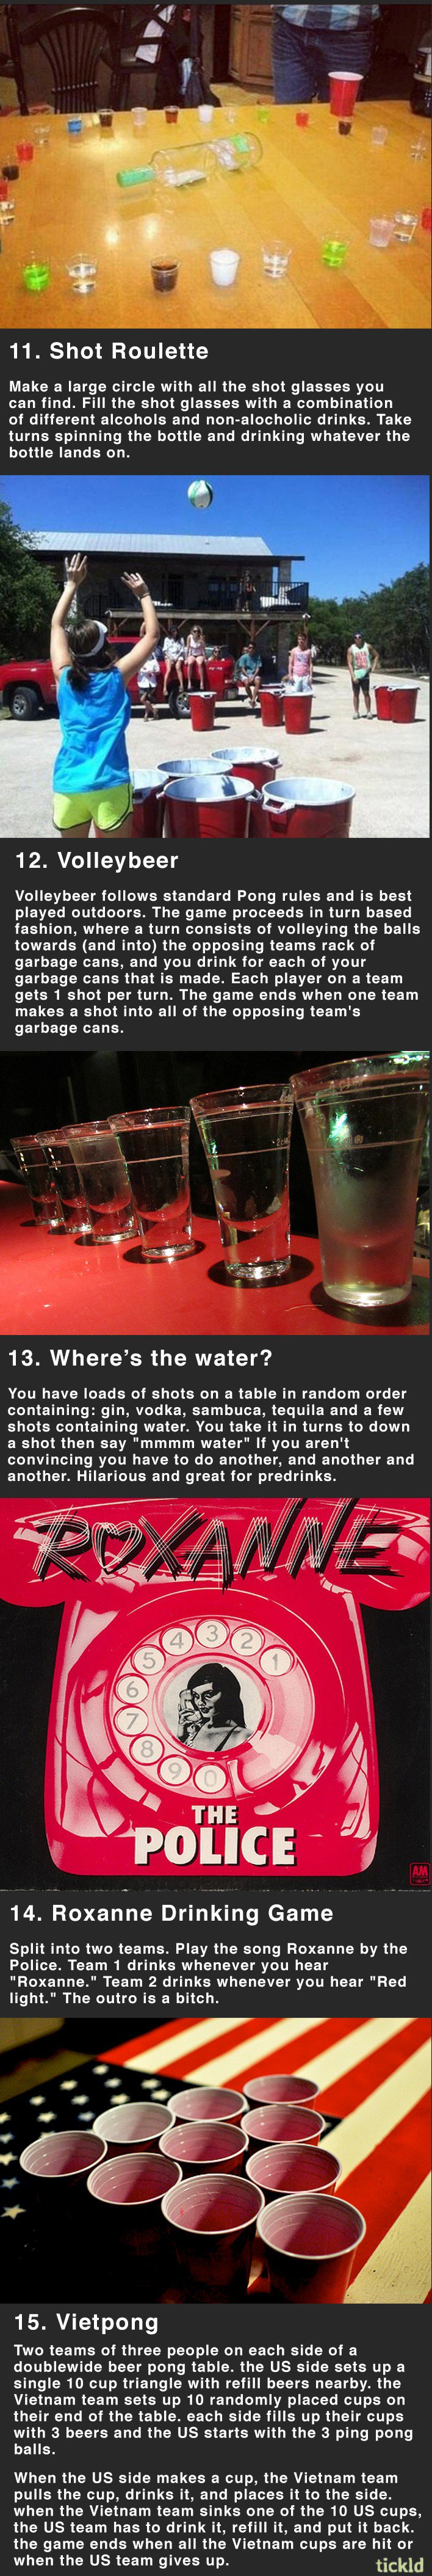 15 best drinking games ever number 7 is genius drinking games